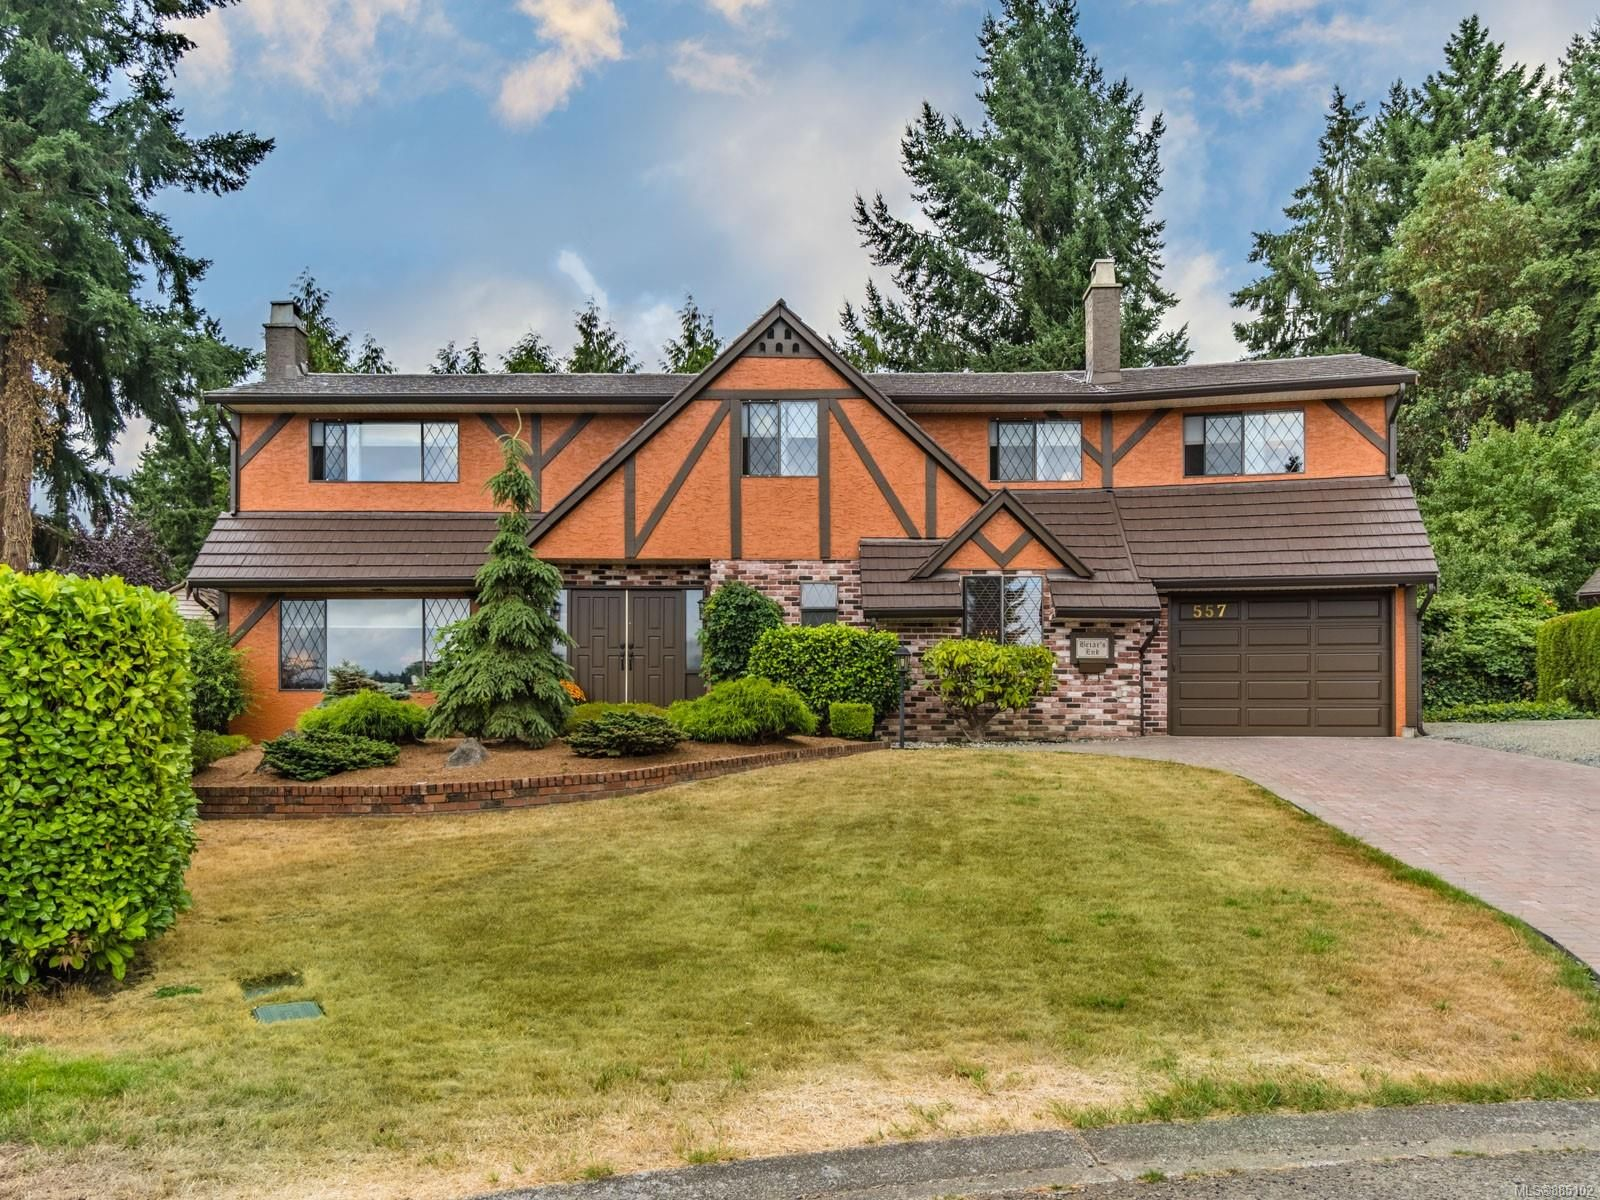 Main Photo: 557 W Greenbriar Pl in : Na Departure Bay House for sale (Nanaimo)  : MLS®# 885102